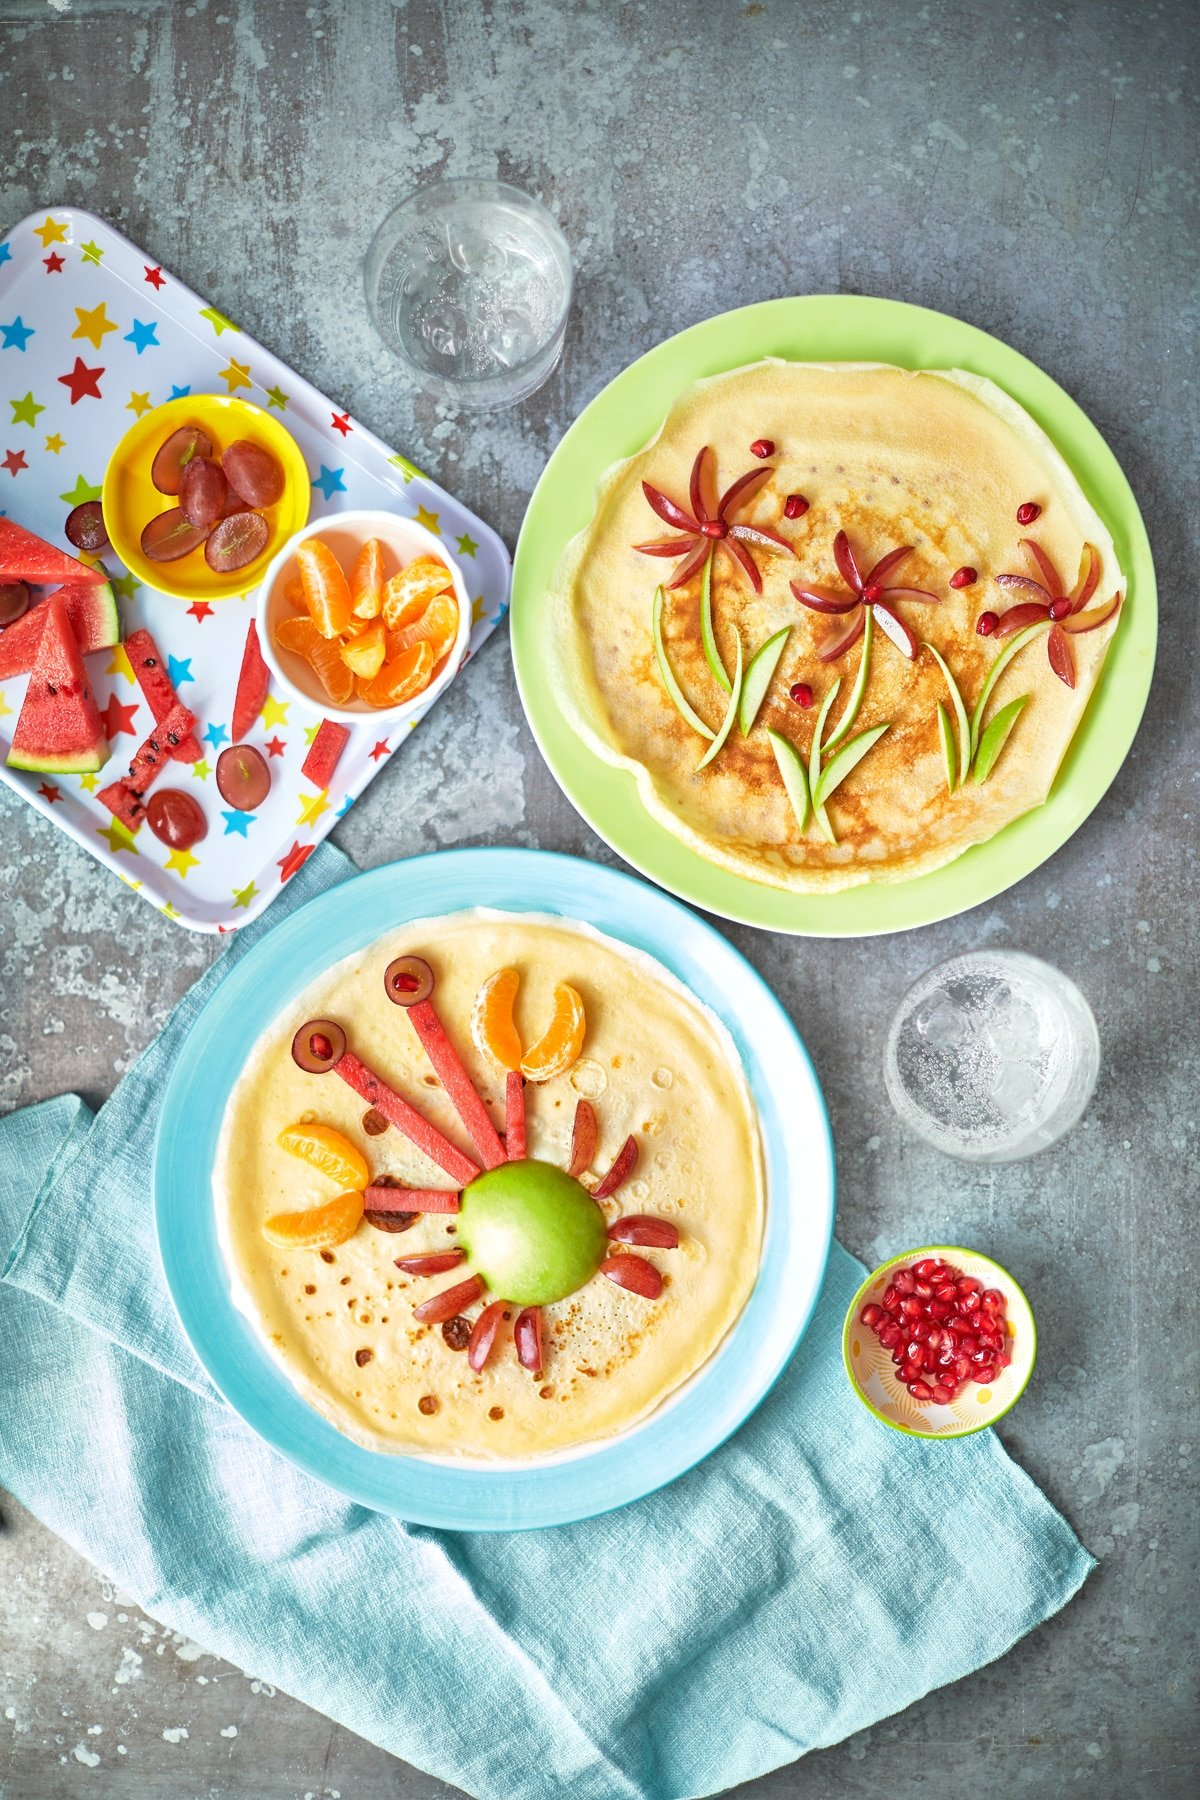 Two crepe-style pancakes on coloured plates. Both pancakes are decorated with fruit, one to resemble a crab and the other to resemble flowers. Further chopped fruit is shown on tray, to be used to create fun pancake ideas